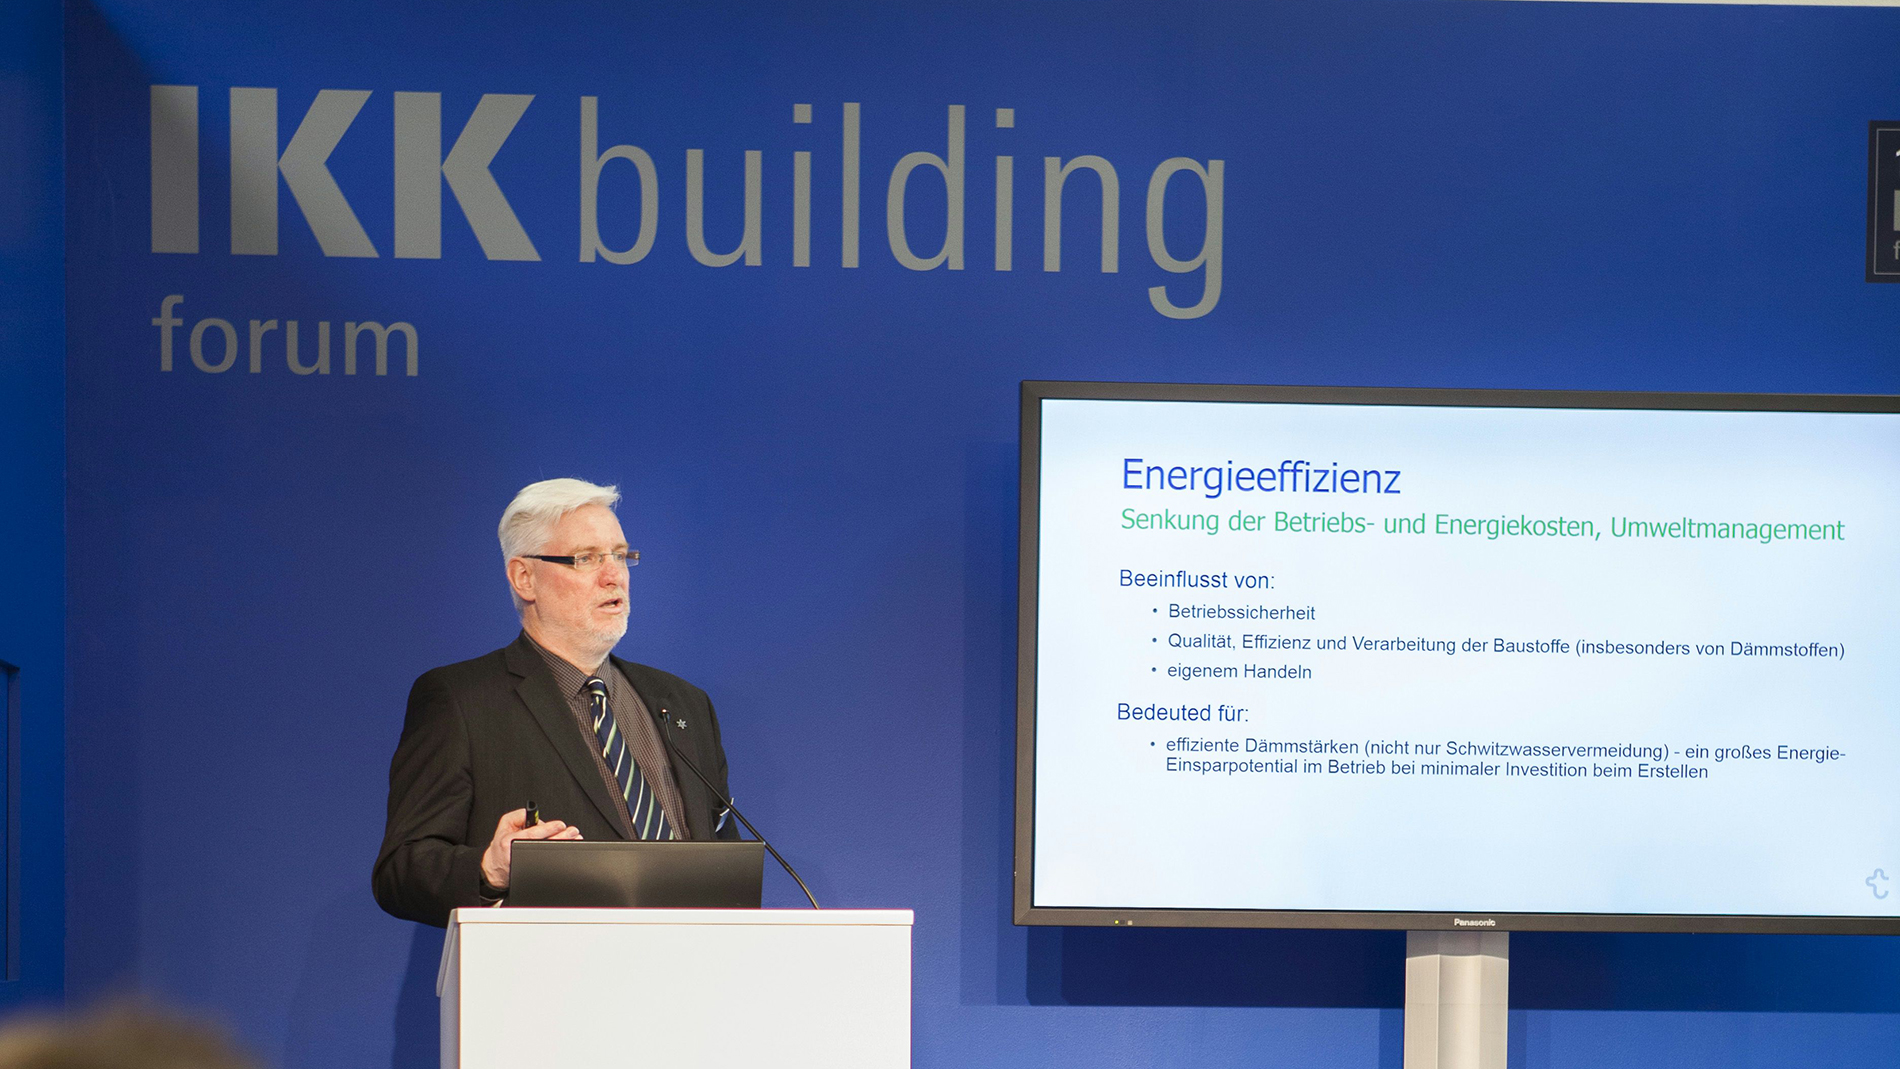 IKK Building Forum